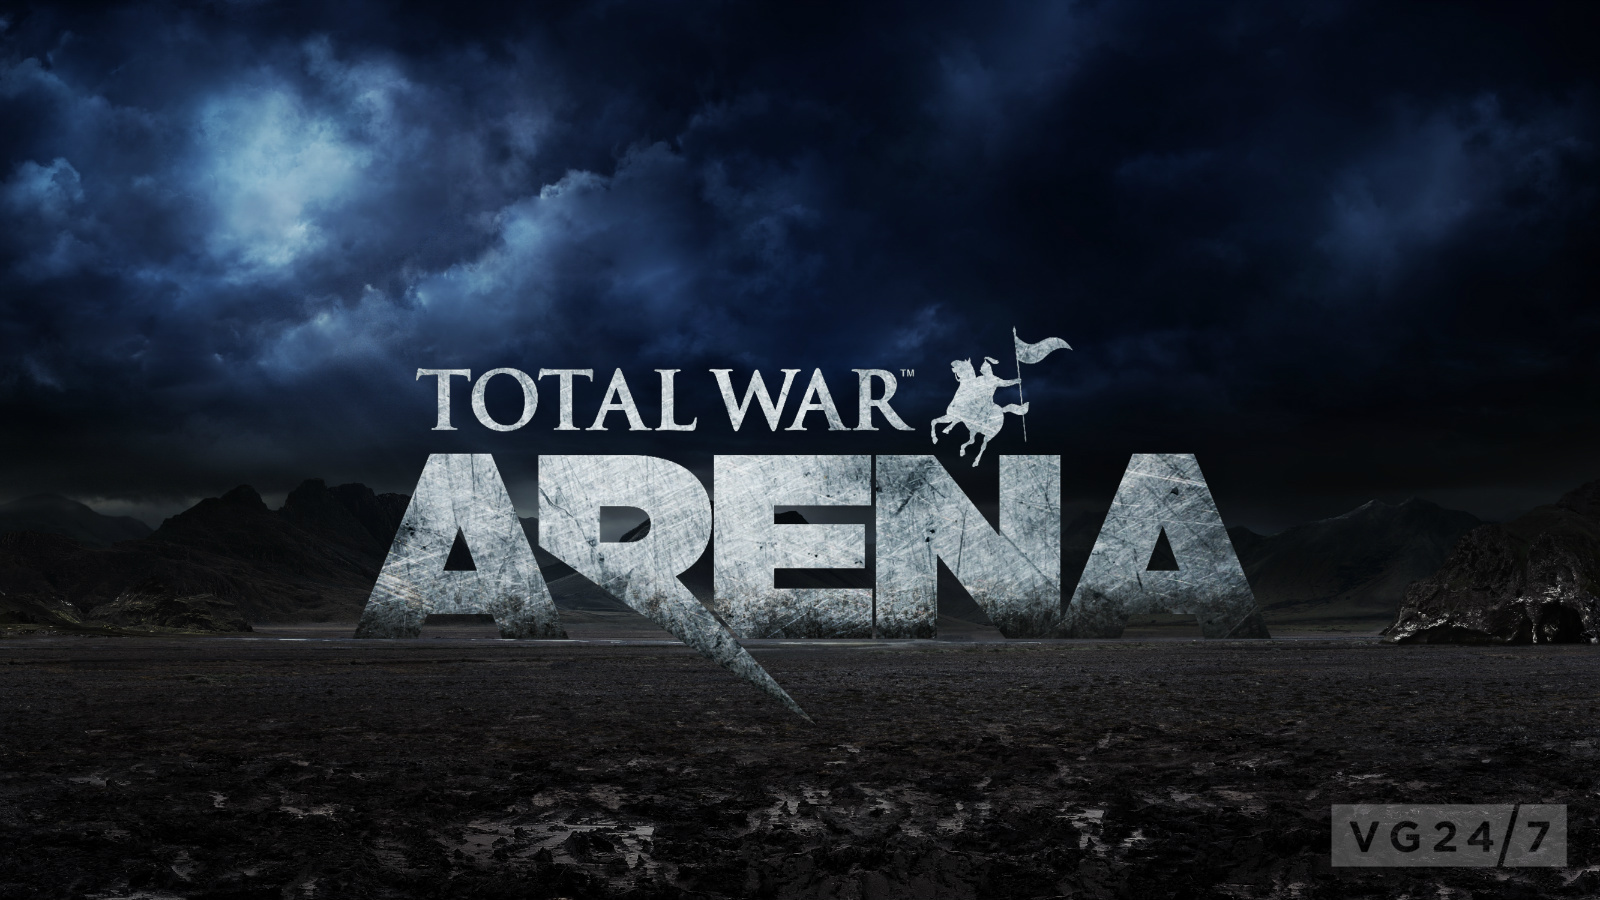 Wallpaper Skull 3d First Look At Total War Arena Gameplay To Be Livestreamed